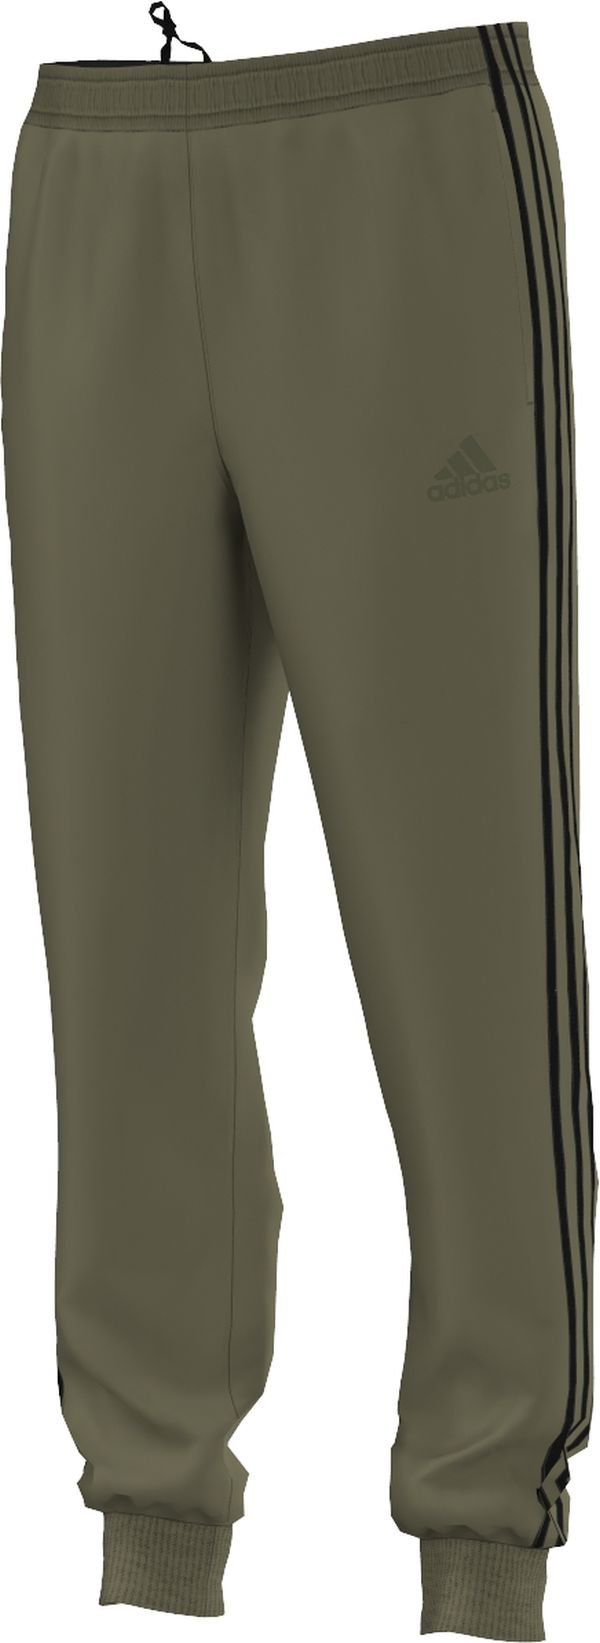 adidas Men's Essentials Tricot Jogger Pants, Olive Cargo/Black, Large by adidas